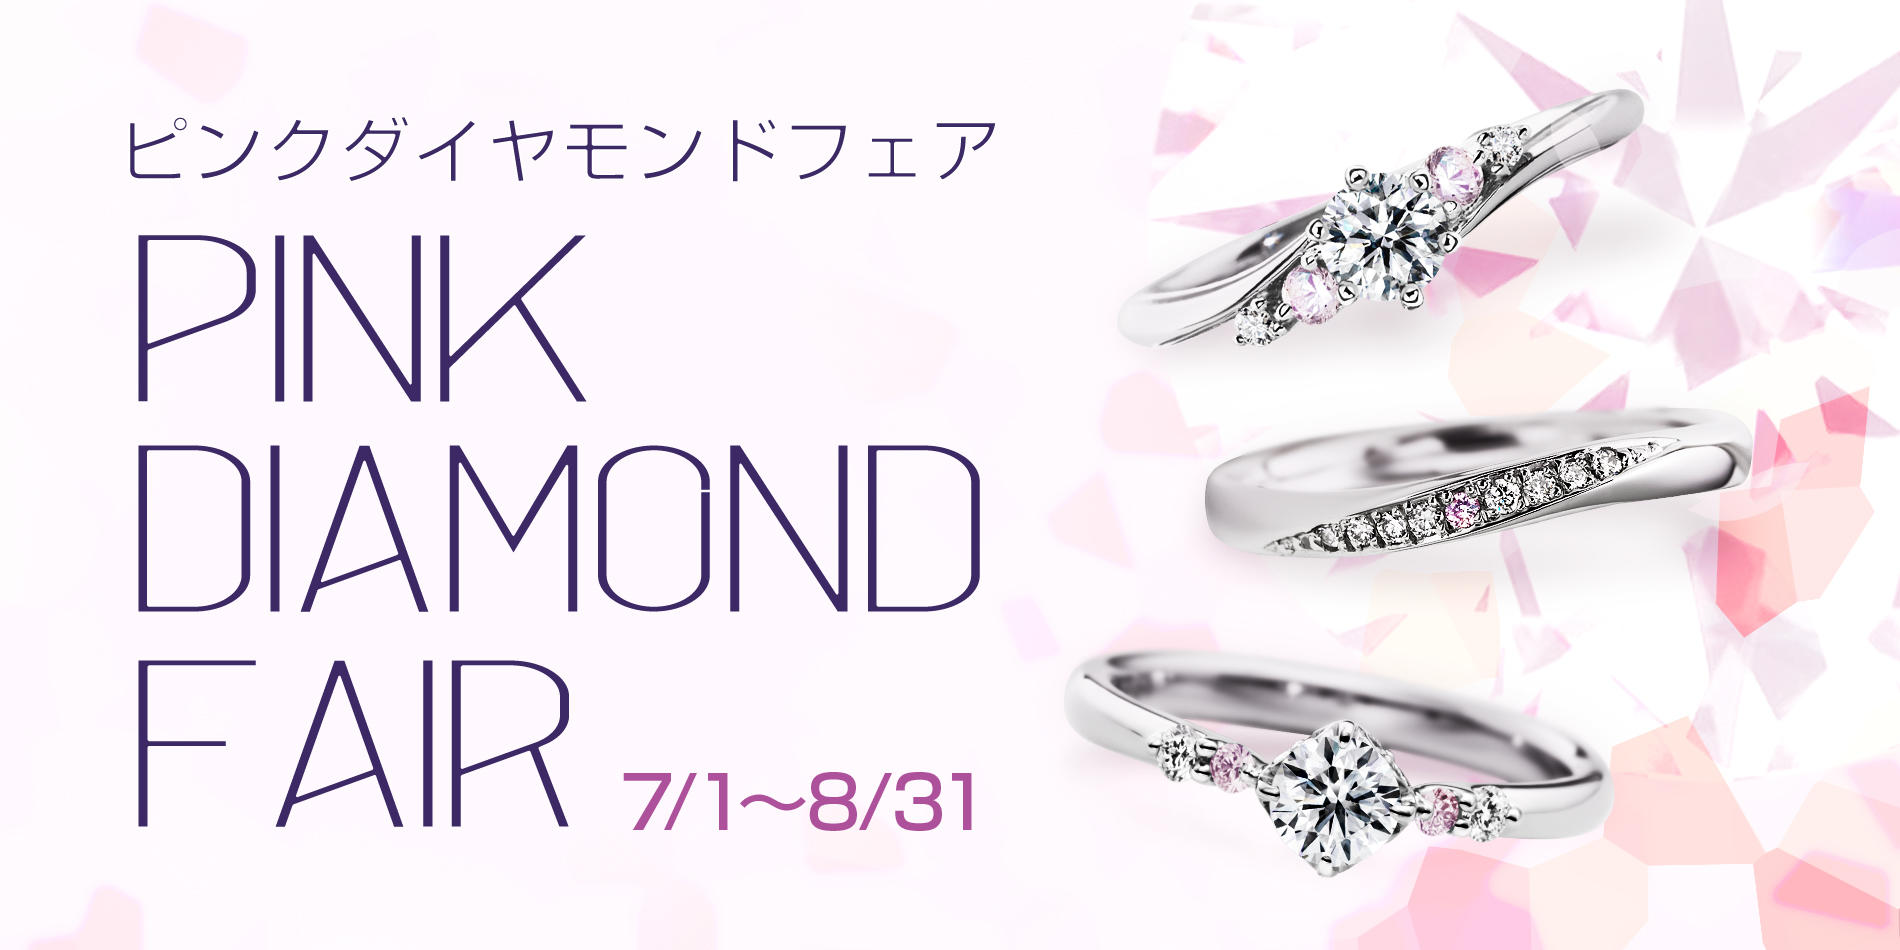 「Pink diamond Fair」開催